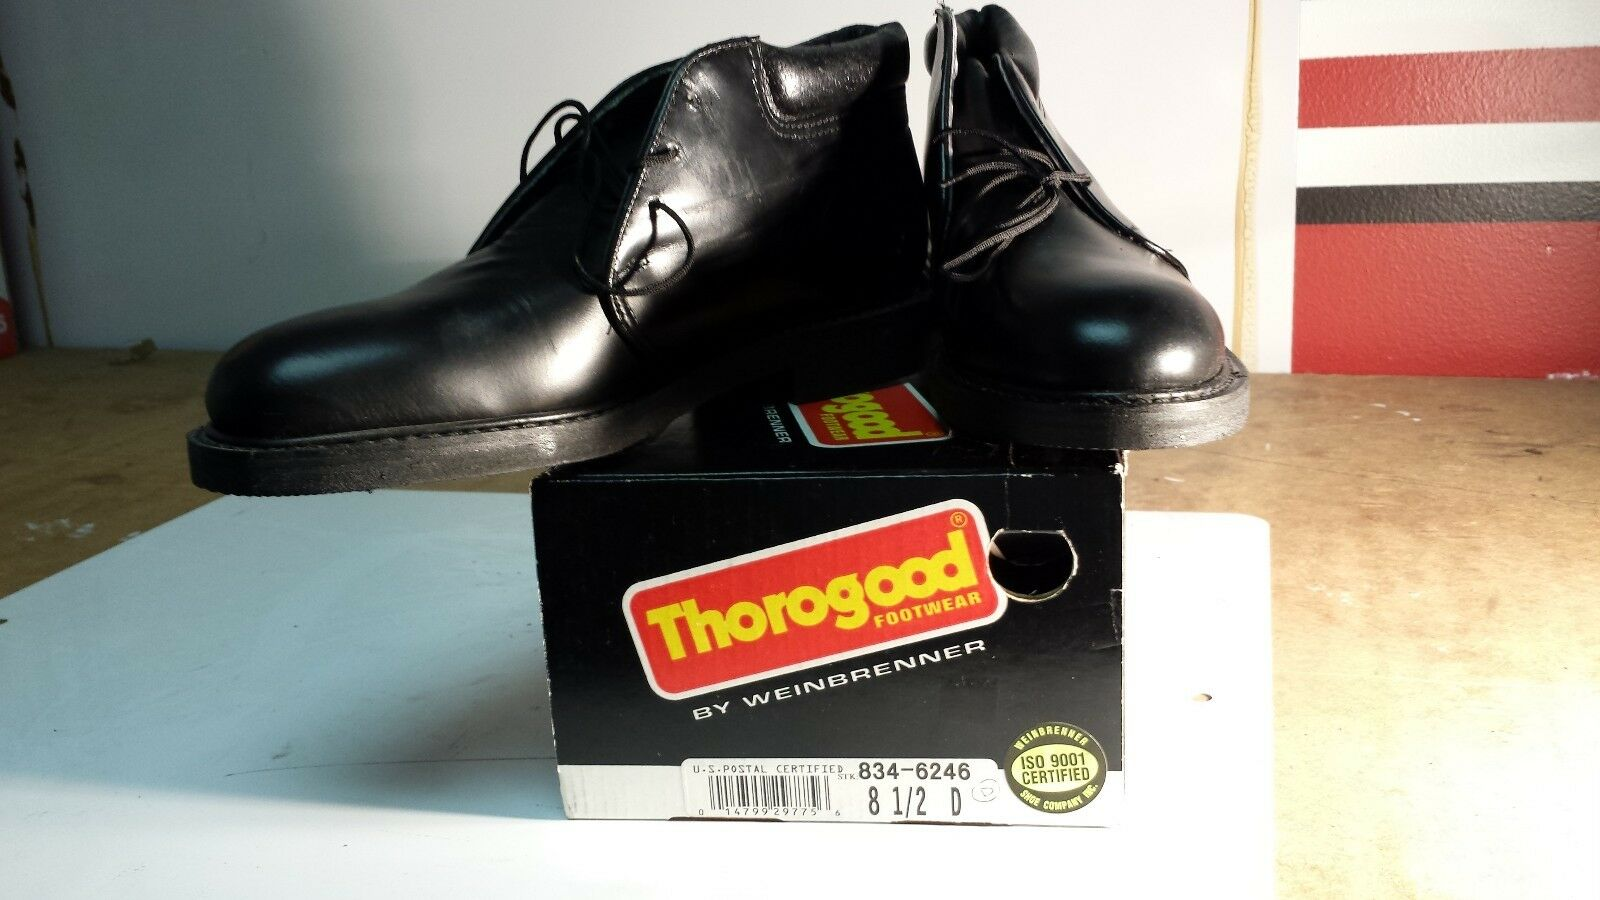 Thgoldgood 834-6246 Men's shoes, NEW, High Shine, Leather, Close-out, Reduced 35%